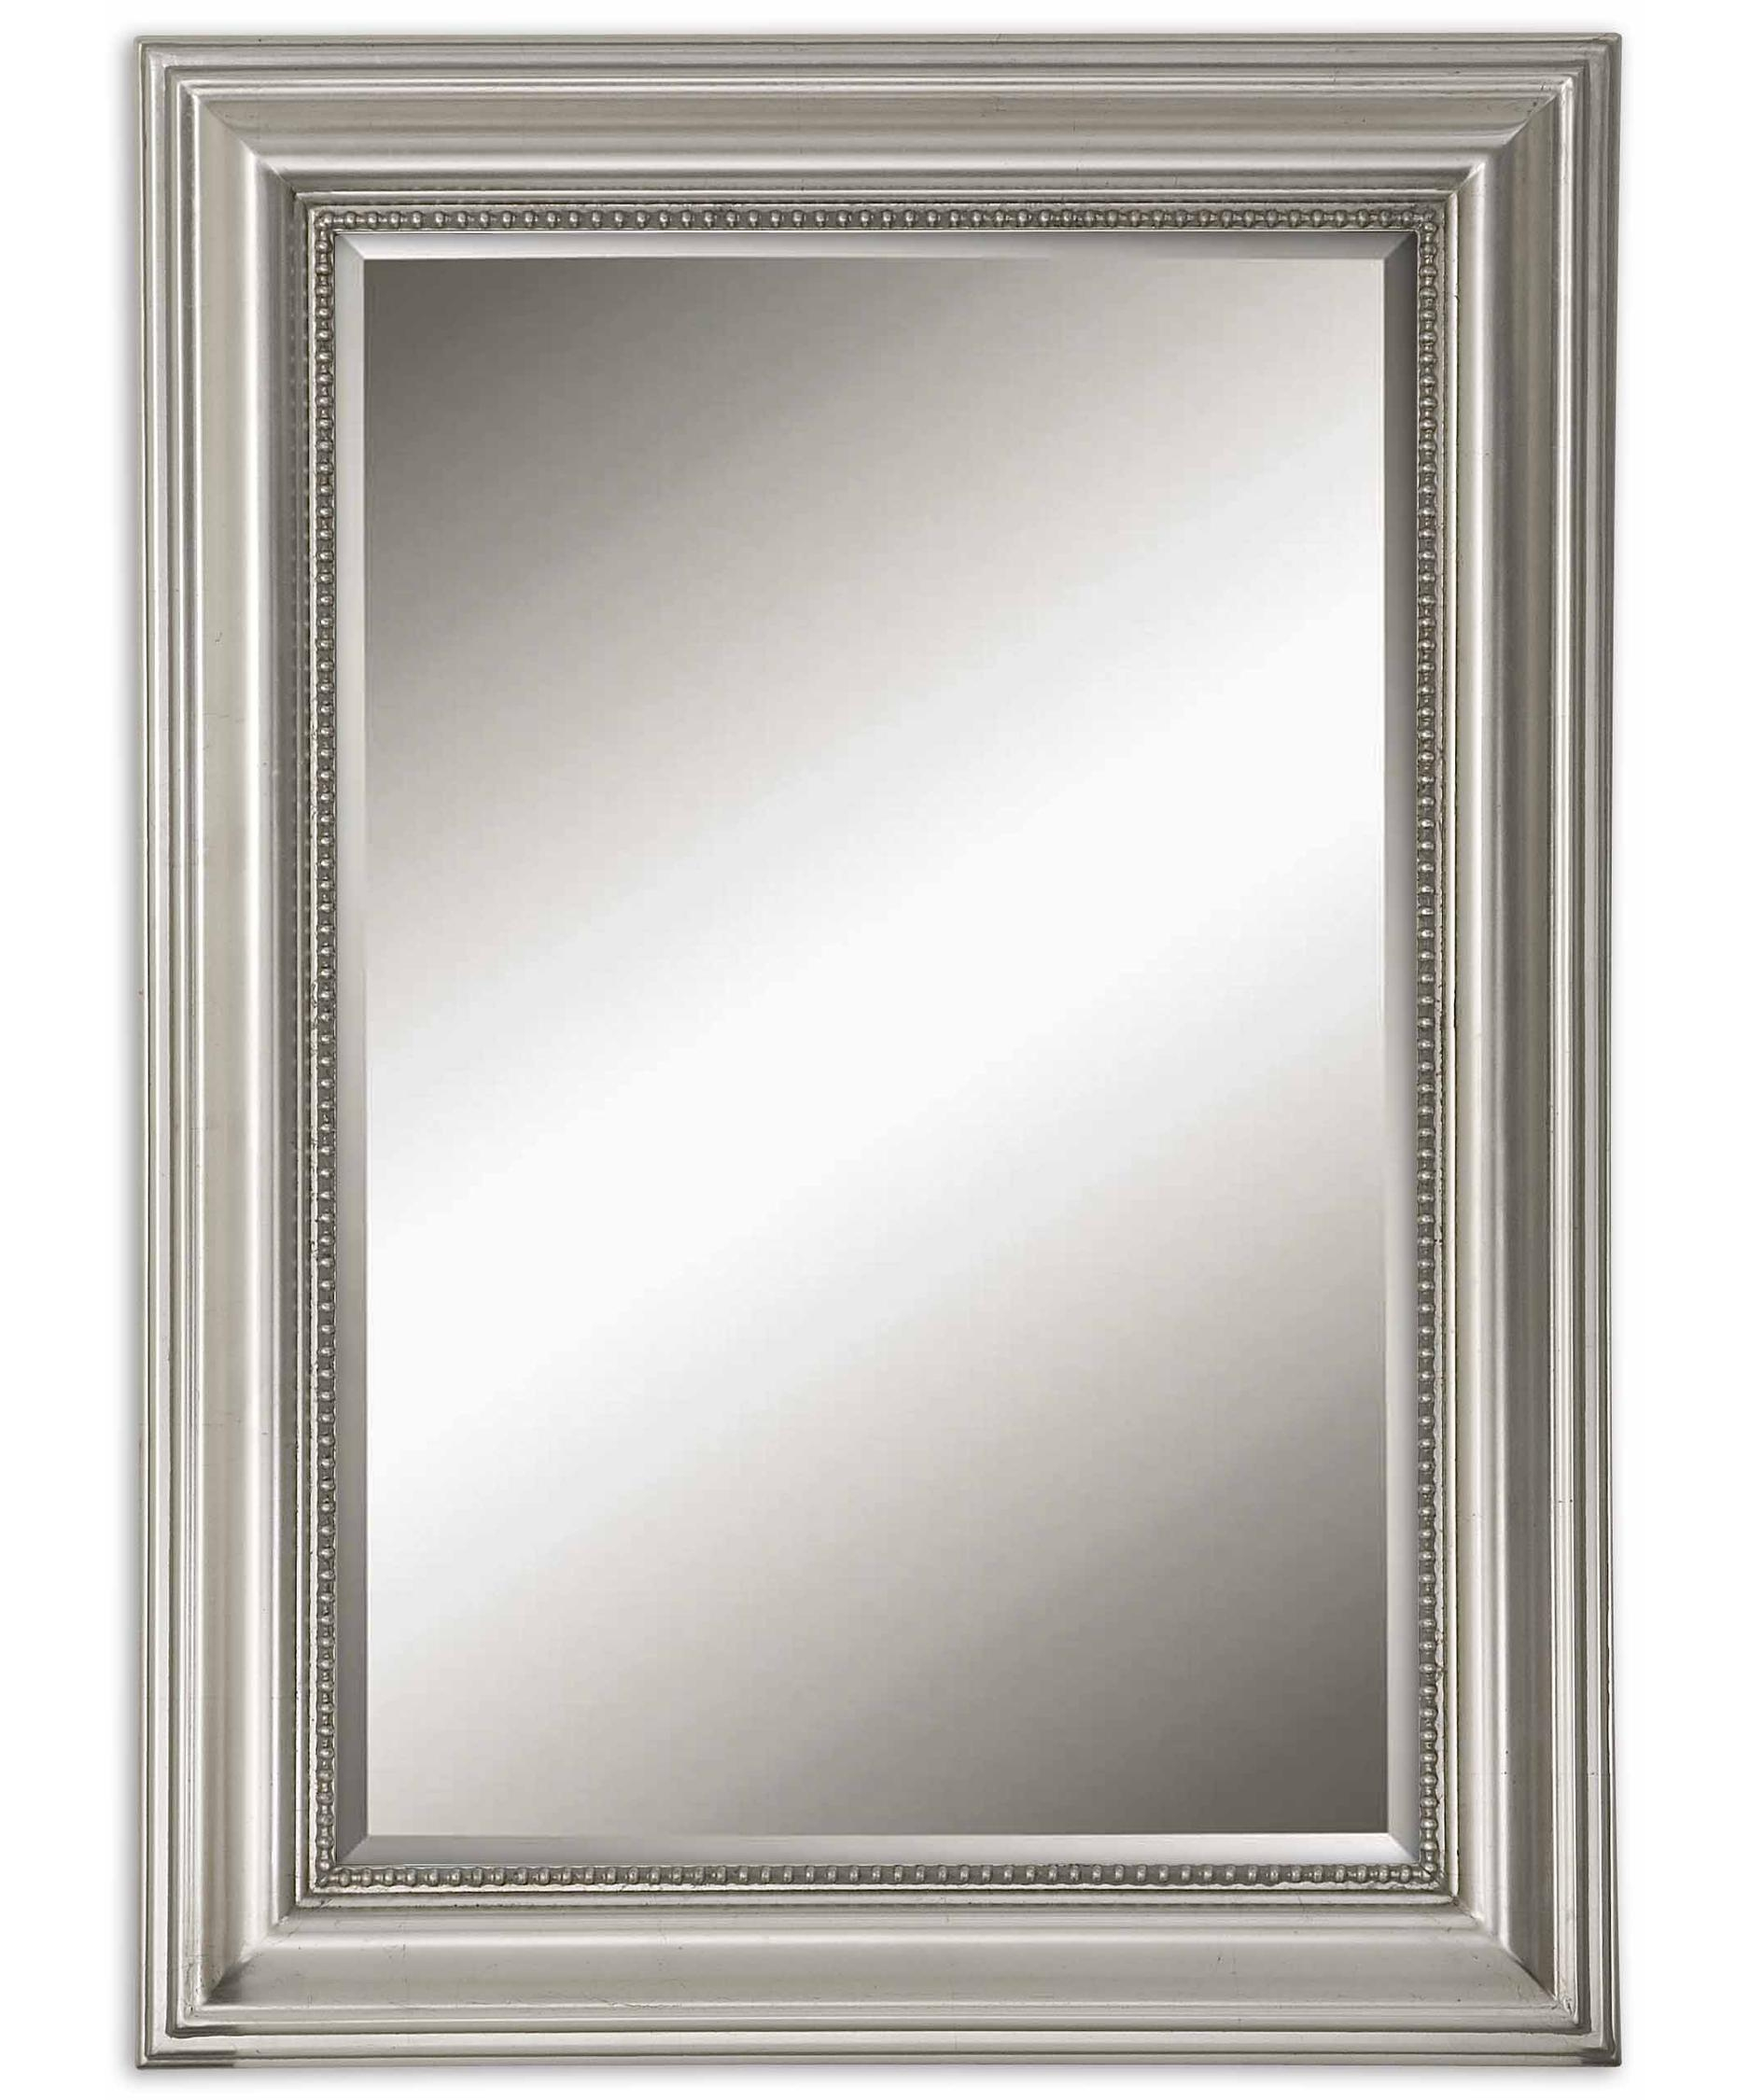 Exquisite Decoration Silver Wall Mirrors Attractive Inspiration Within Ornamental Mirrors (Image 7 of 15)